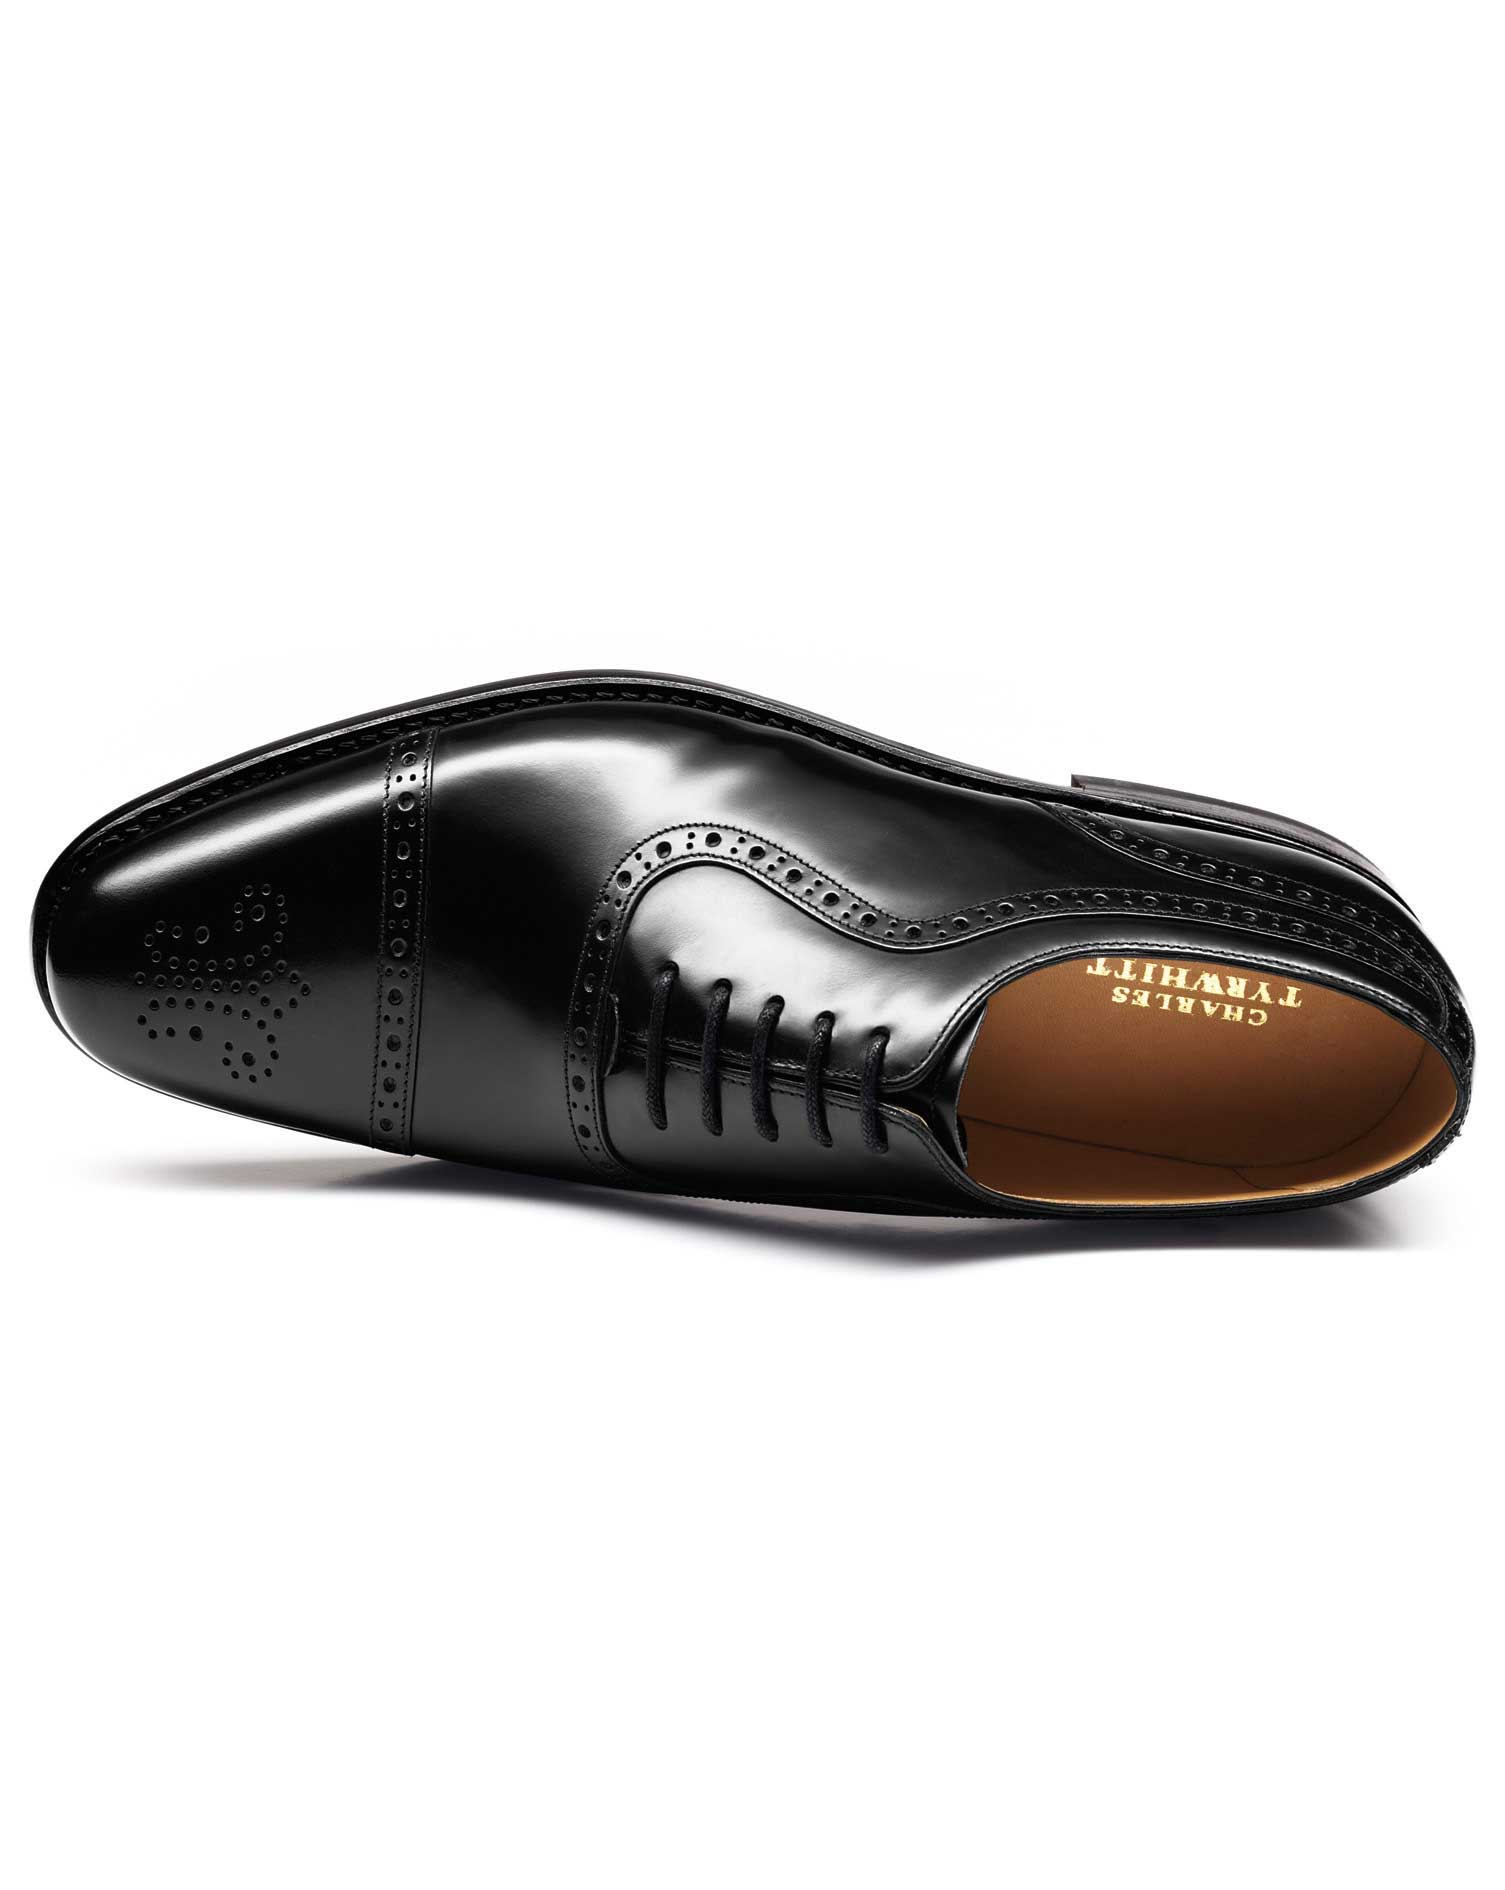 Black Parker Toe Cap Brogue Oxford Shoes Size 10 W by Charles Tyrwhitt